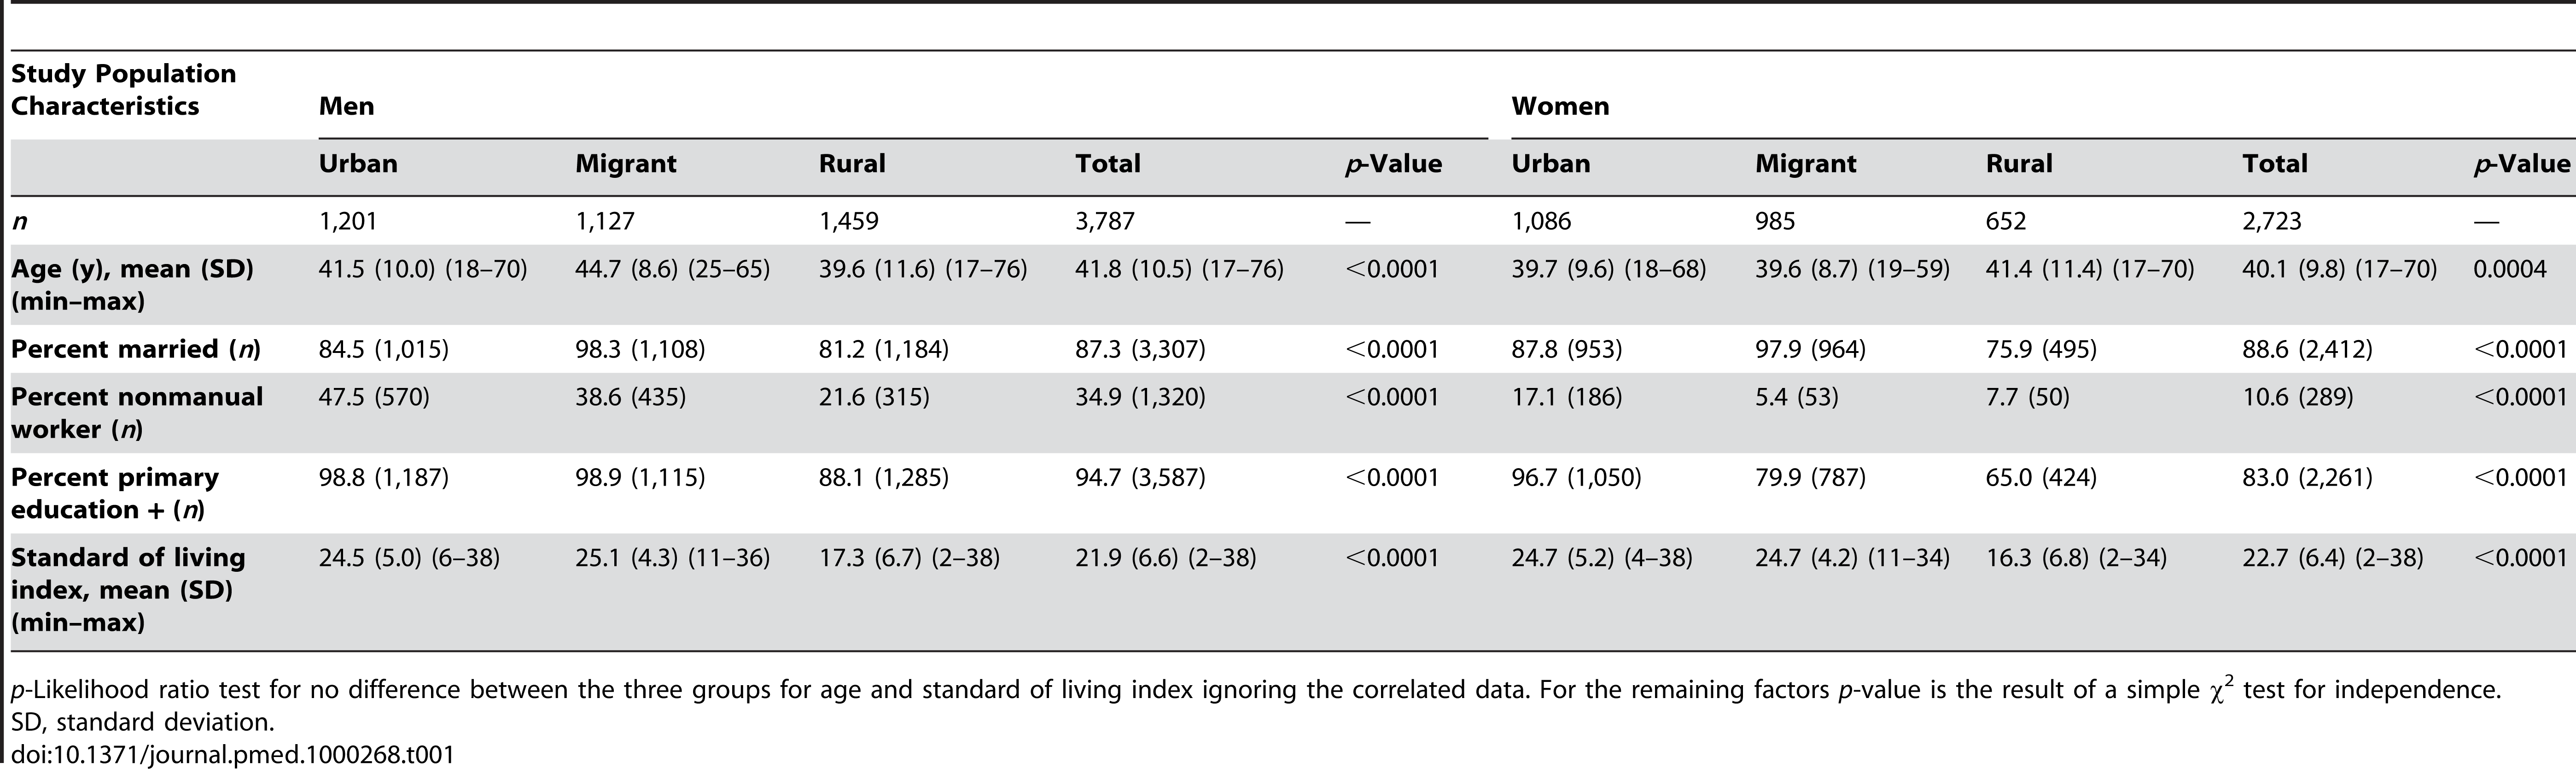 Study population characteristics by sex and place of origin, Indian migration study, 2005–2007.